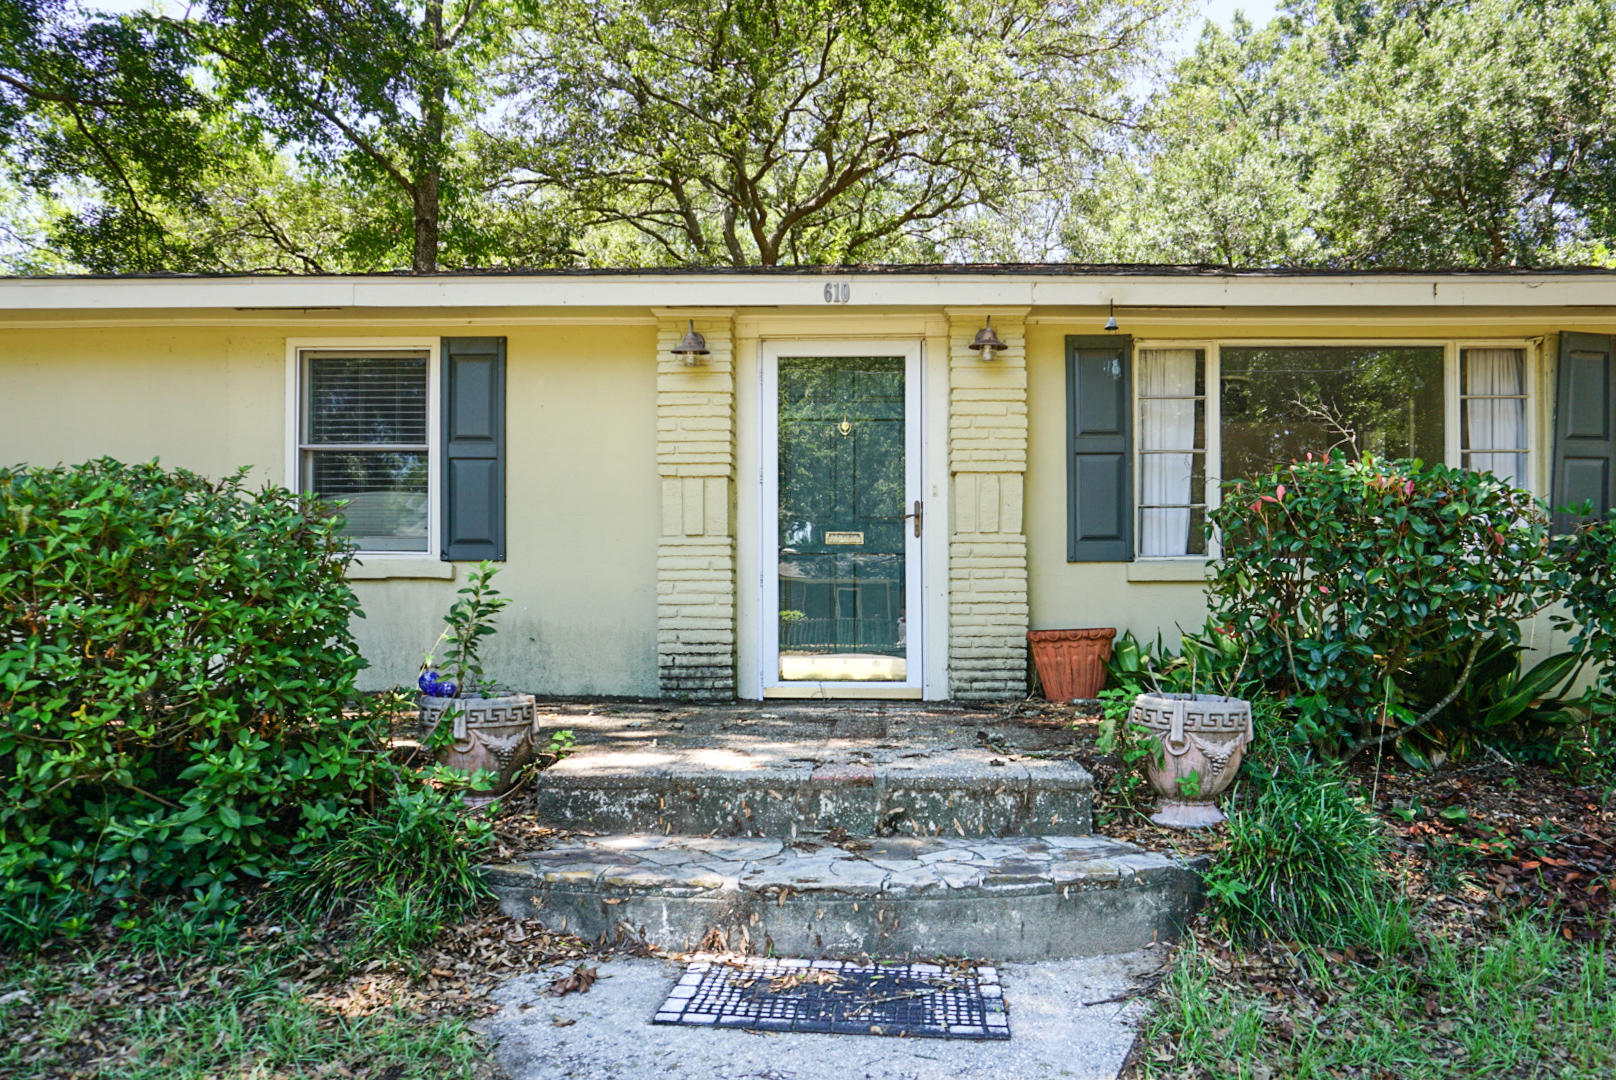 Old Mt Pleasant Homes For Sale - 610 King, Mount Pleasant, SC - 7